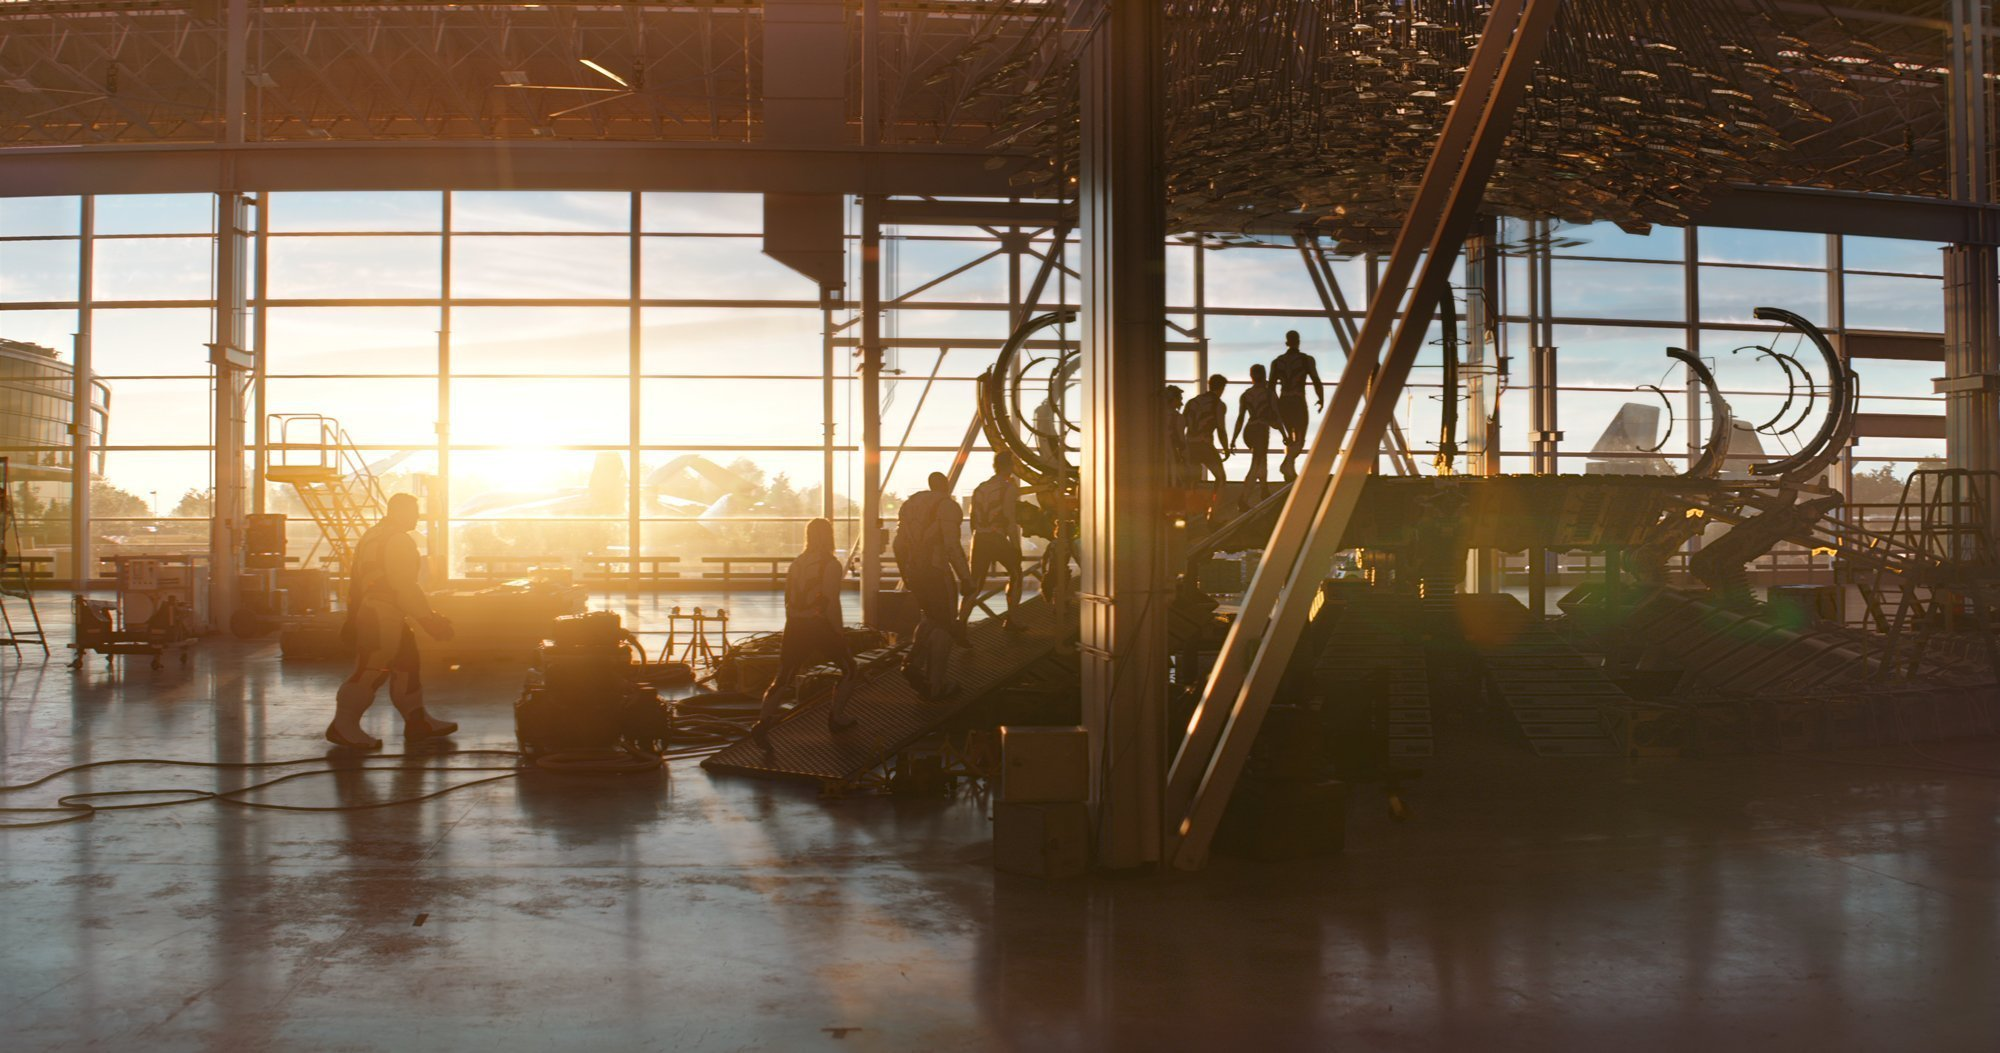 Photo du film Avengers: Endgame avec la machine temporelle au coucher de soleil